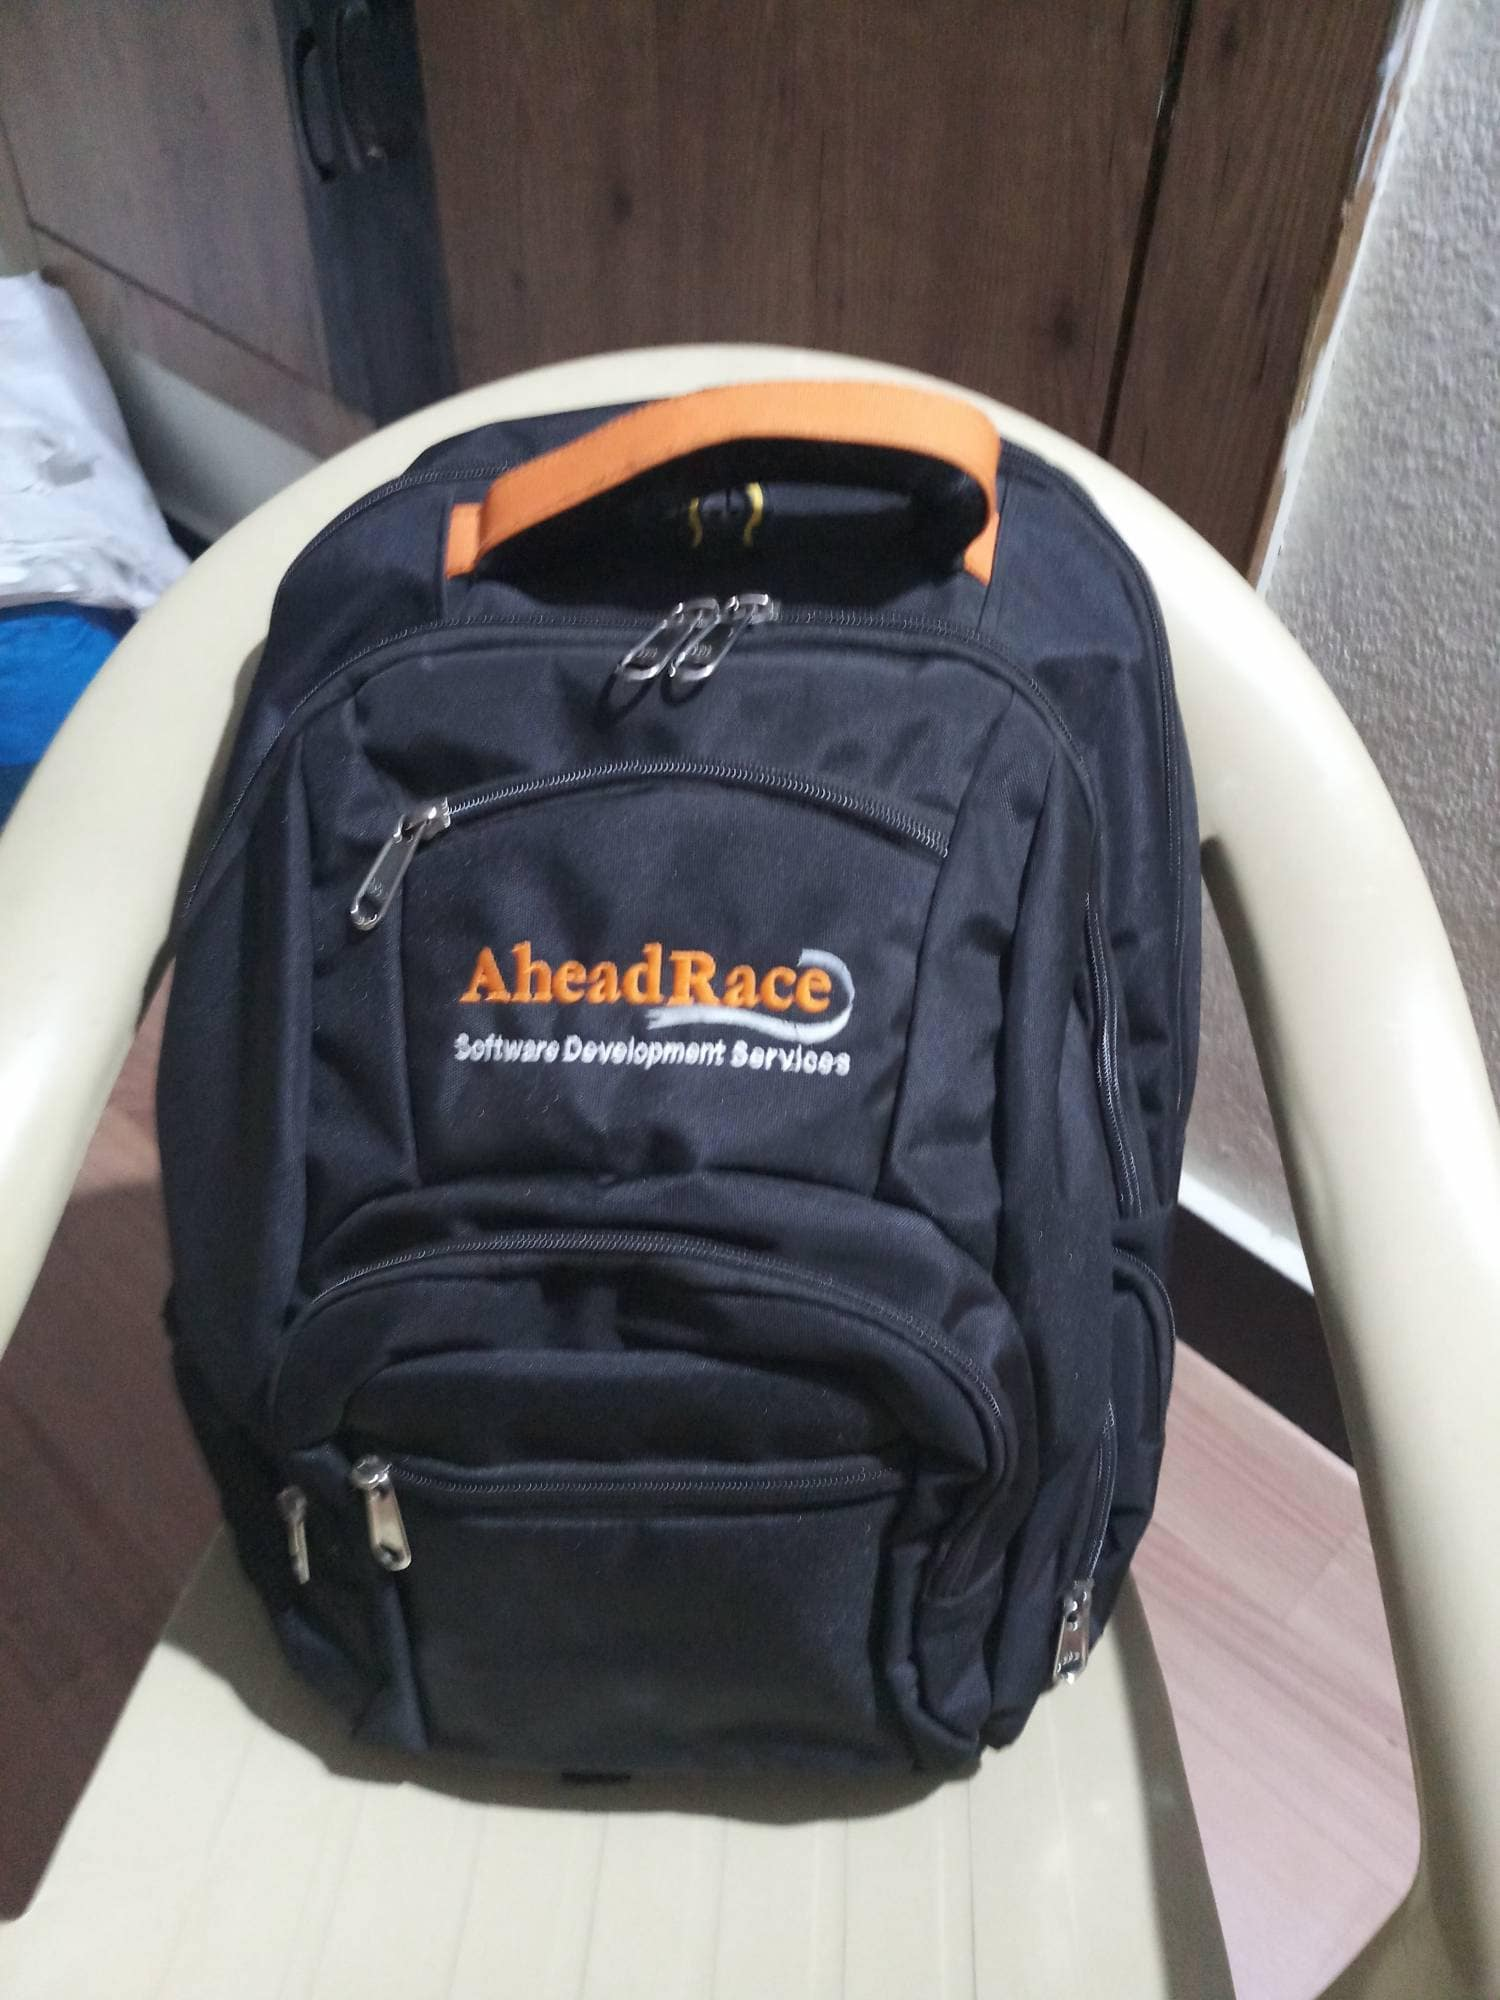 7b76a6b01715 Top 100 Bag Manufacturers in Hyderabad - Best Bag For Sweet ...